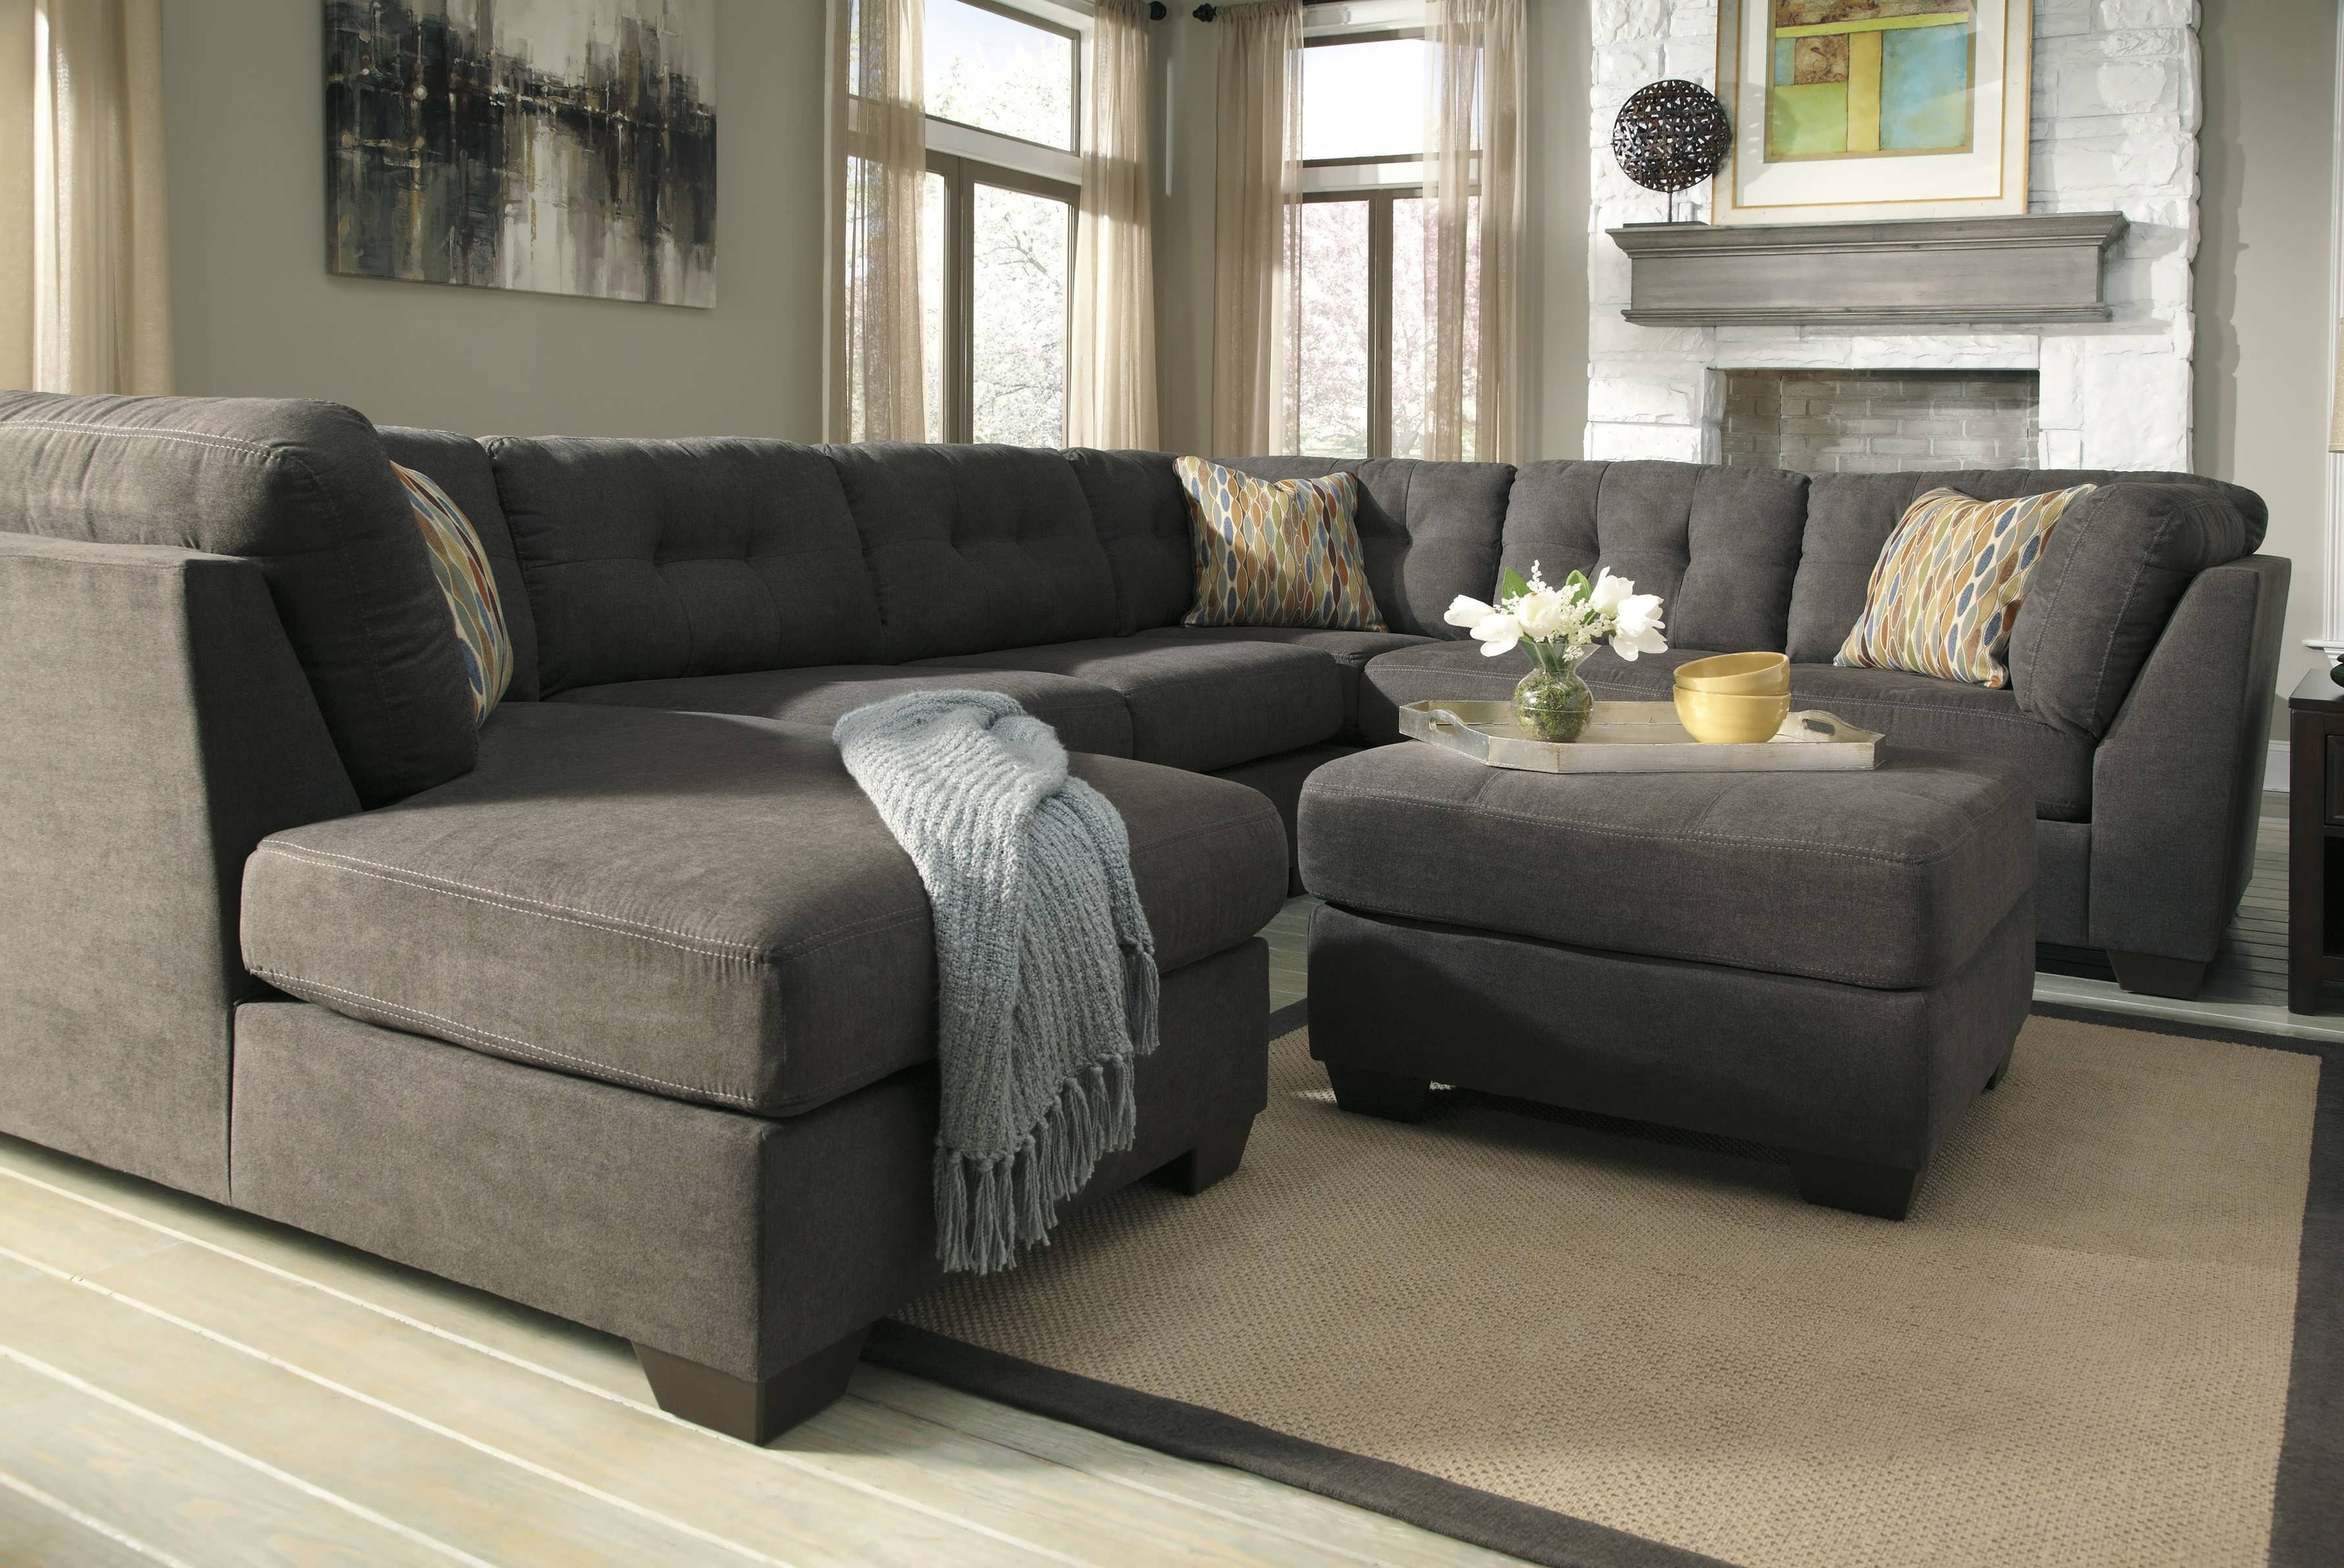 Most Recently Released Sofa : Grey Sectionals For Sale Grey Chaise Sofa Dark Grey Within Grey Chaise Sectionals (View 11 of 15)